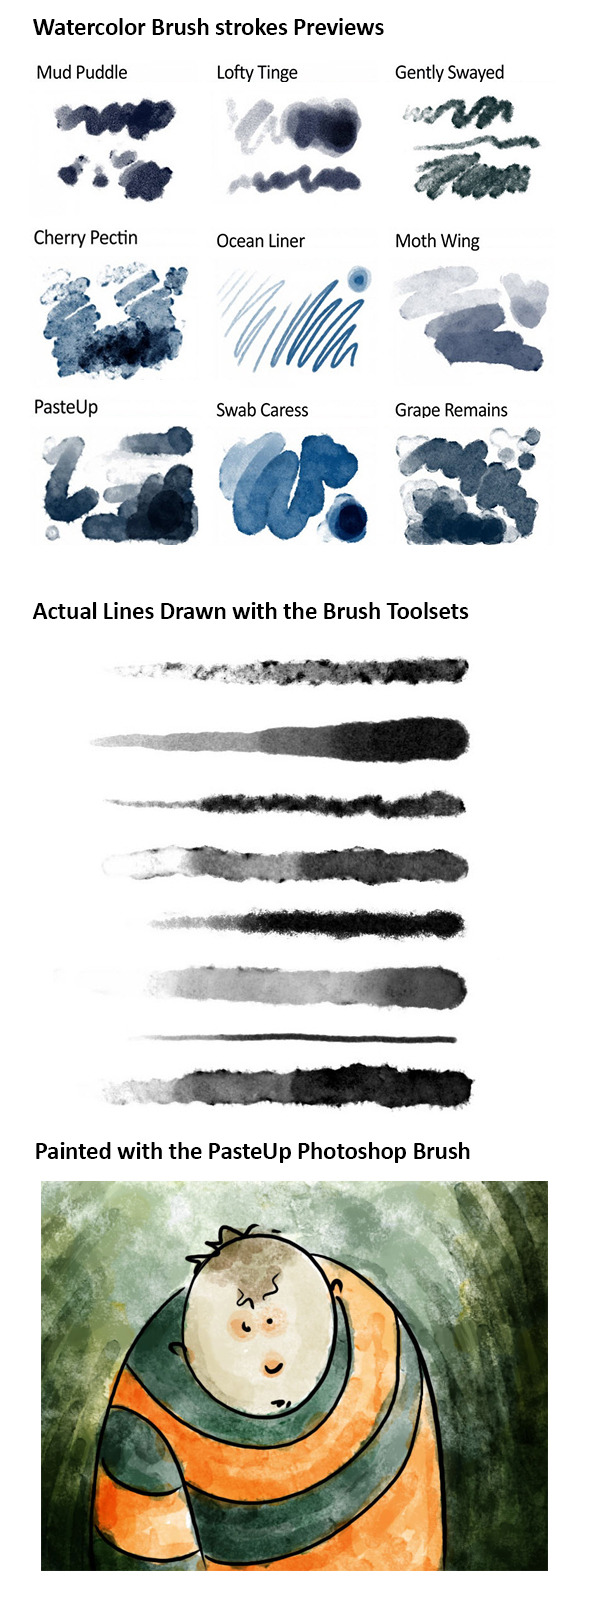 Paint Photoshop Brushes from GraphicRiver